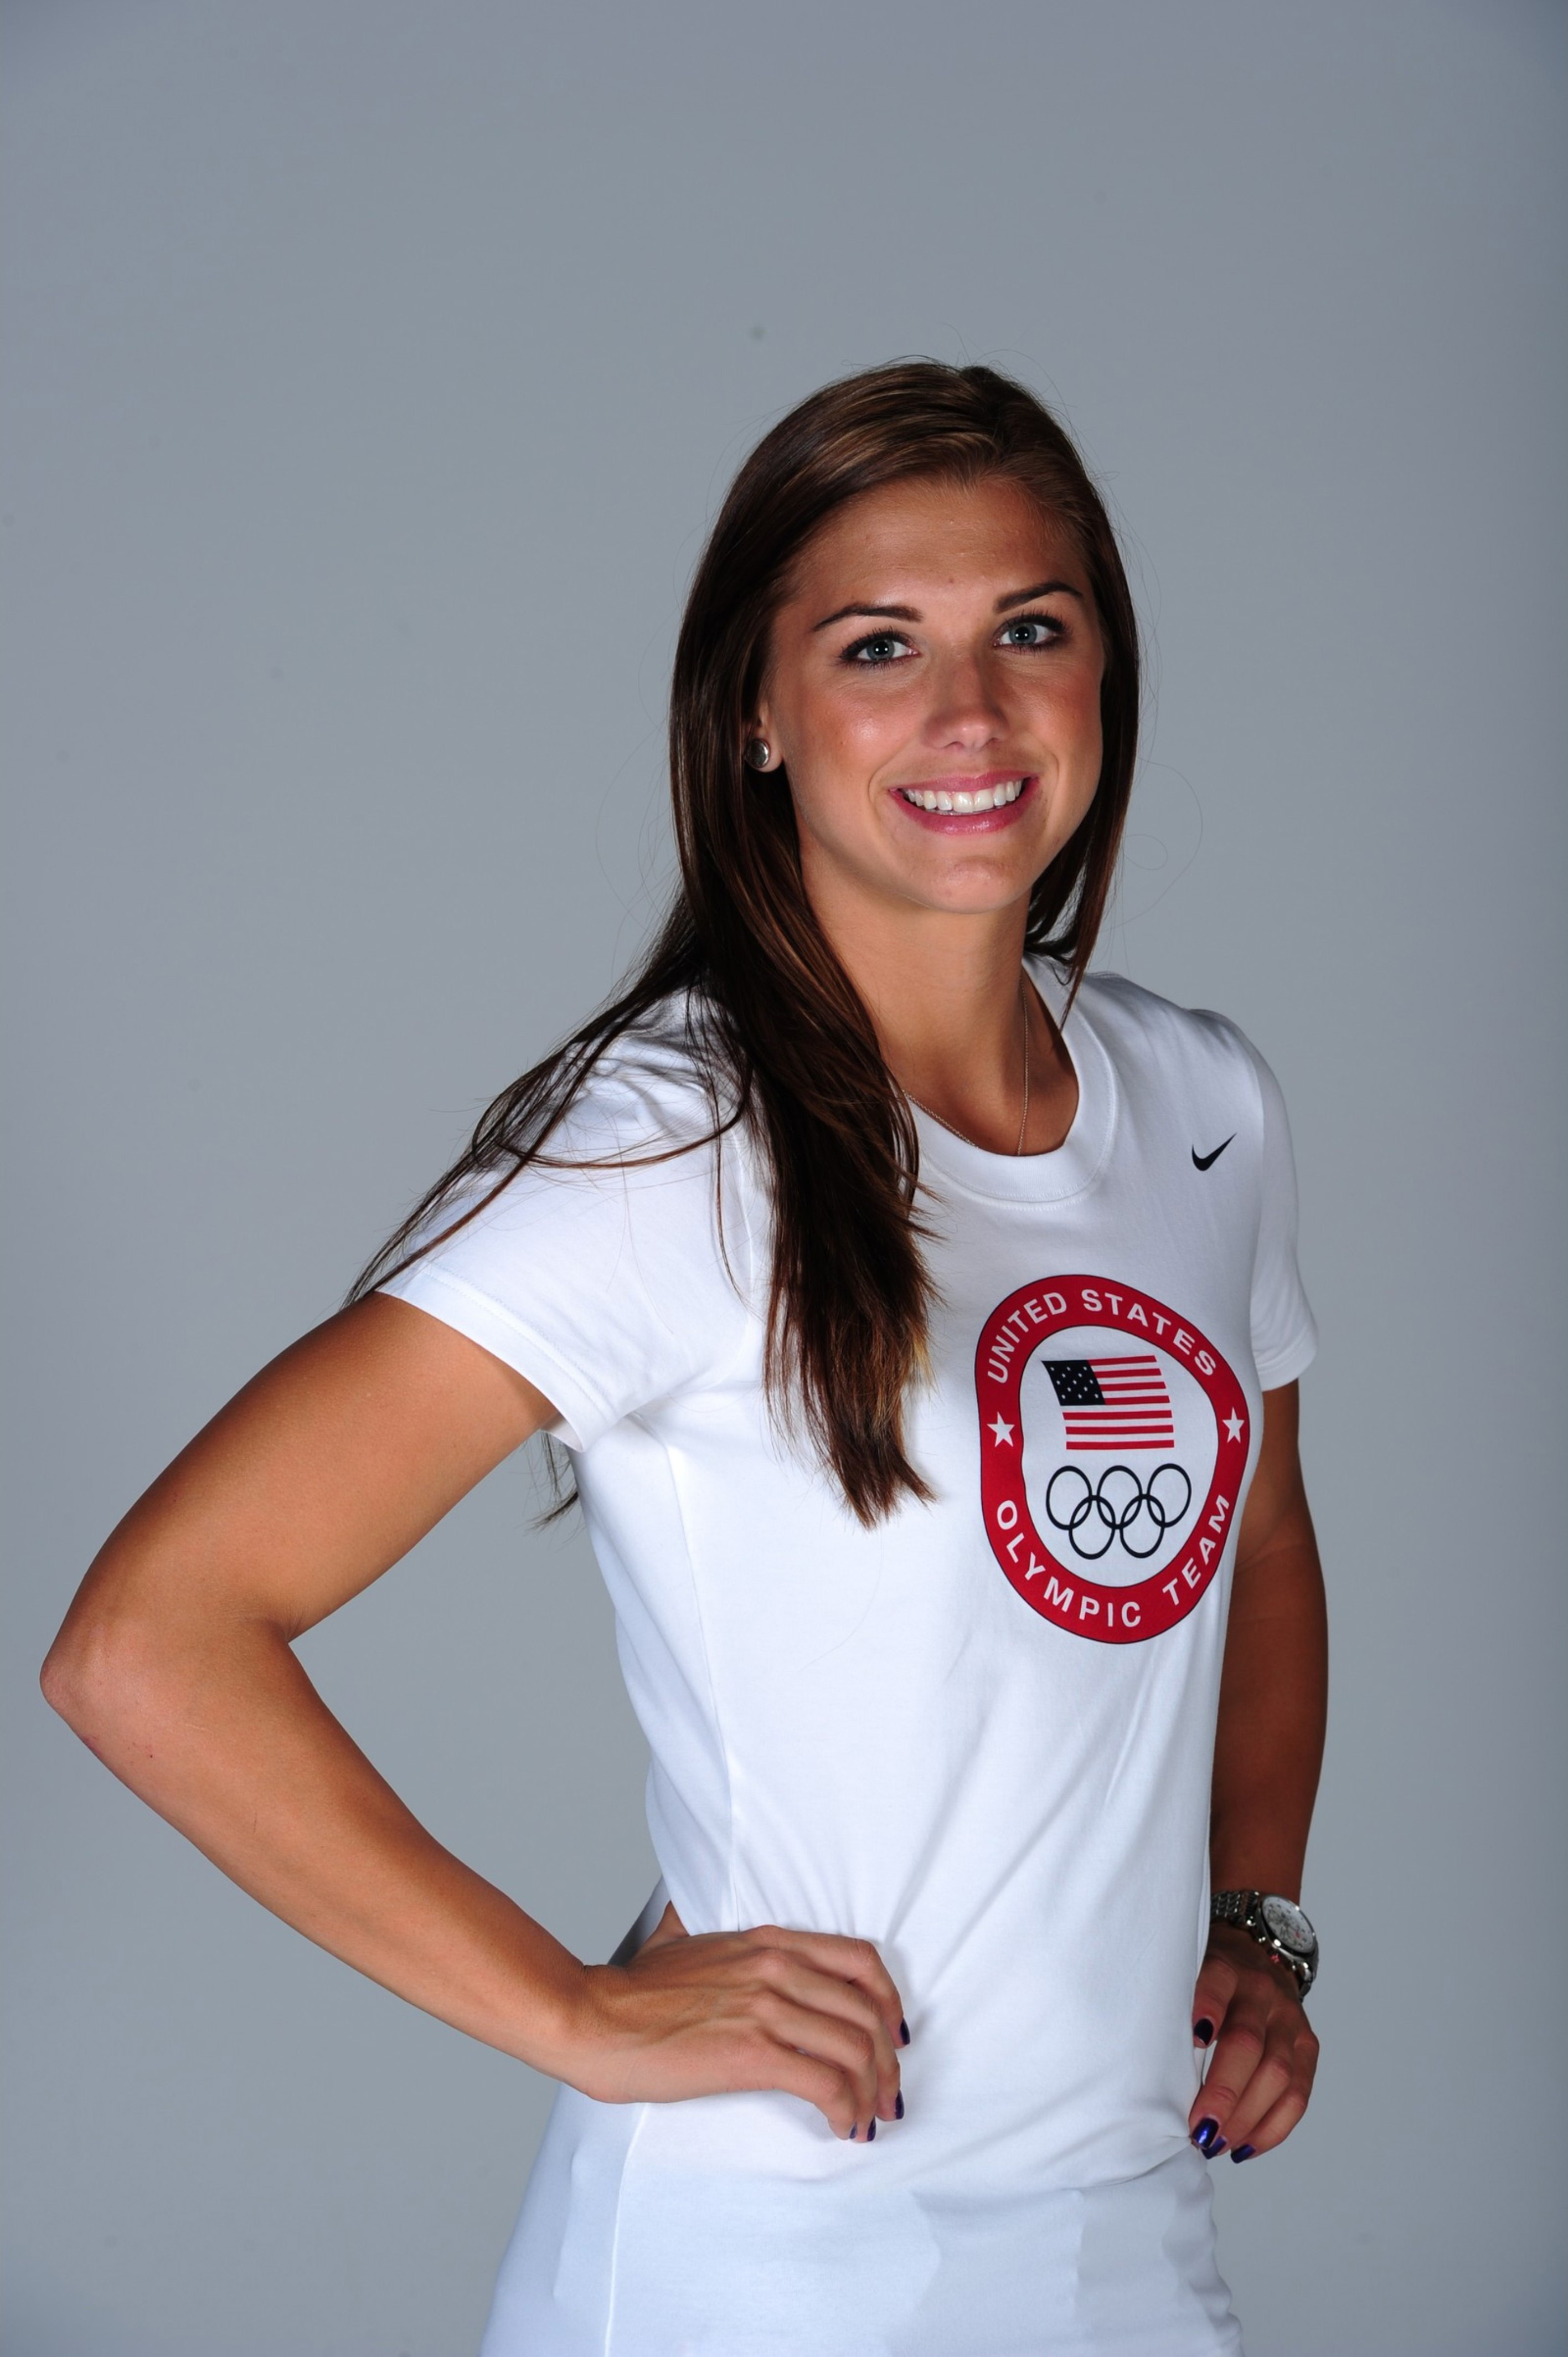 Alex morgan and hope solo body paint